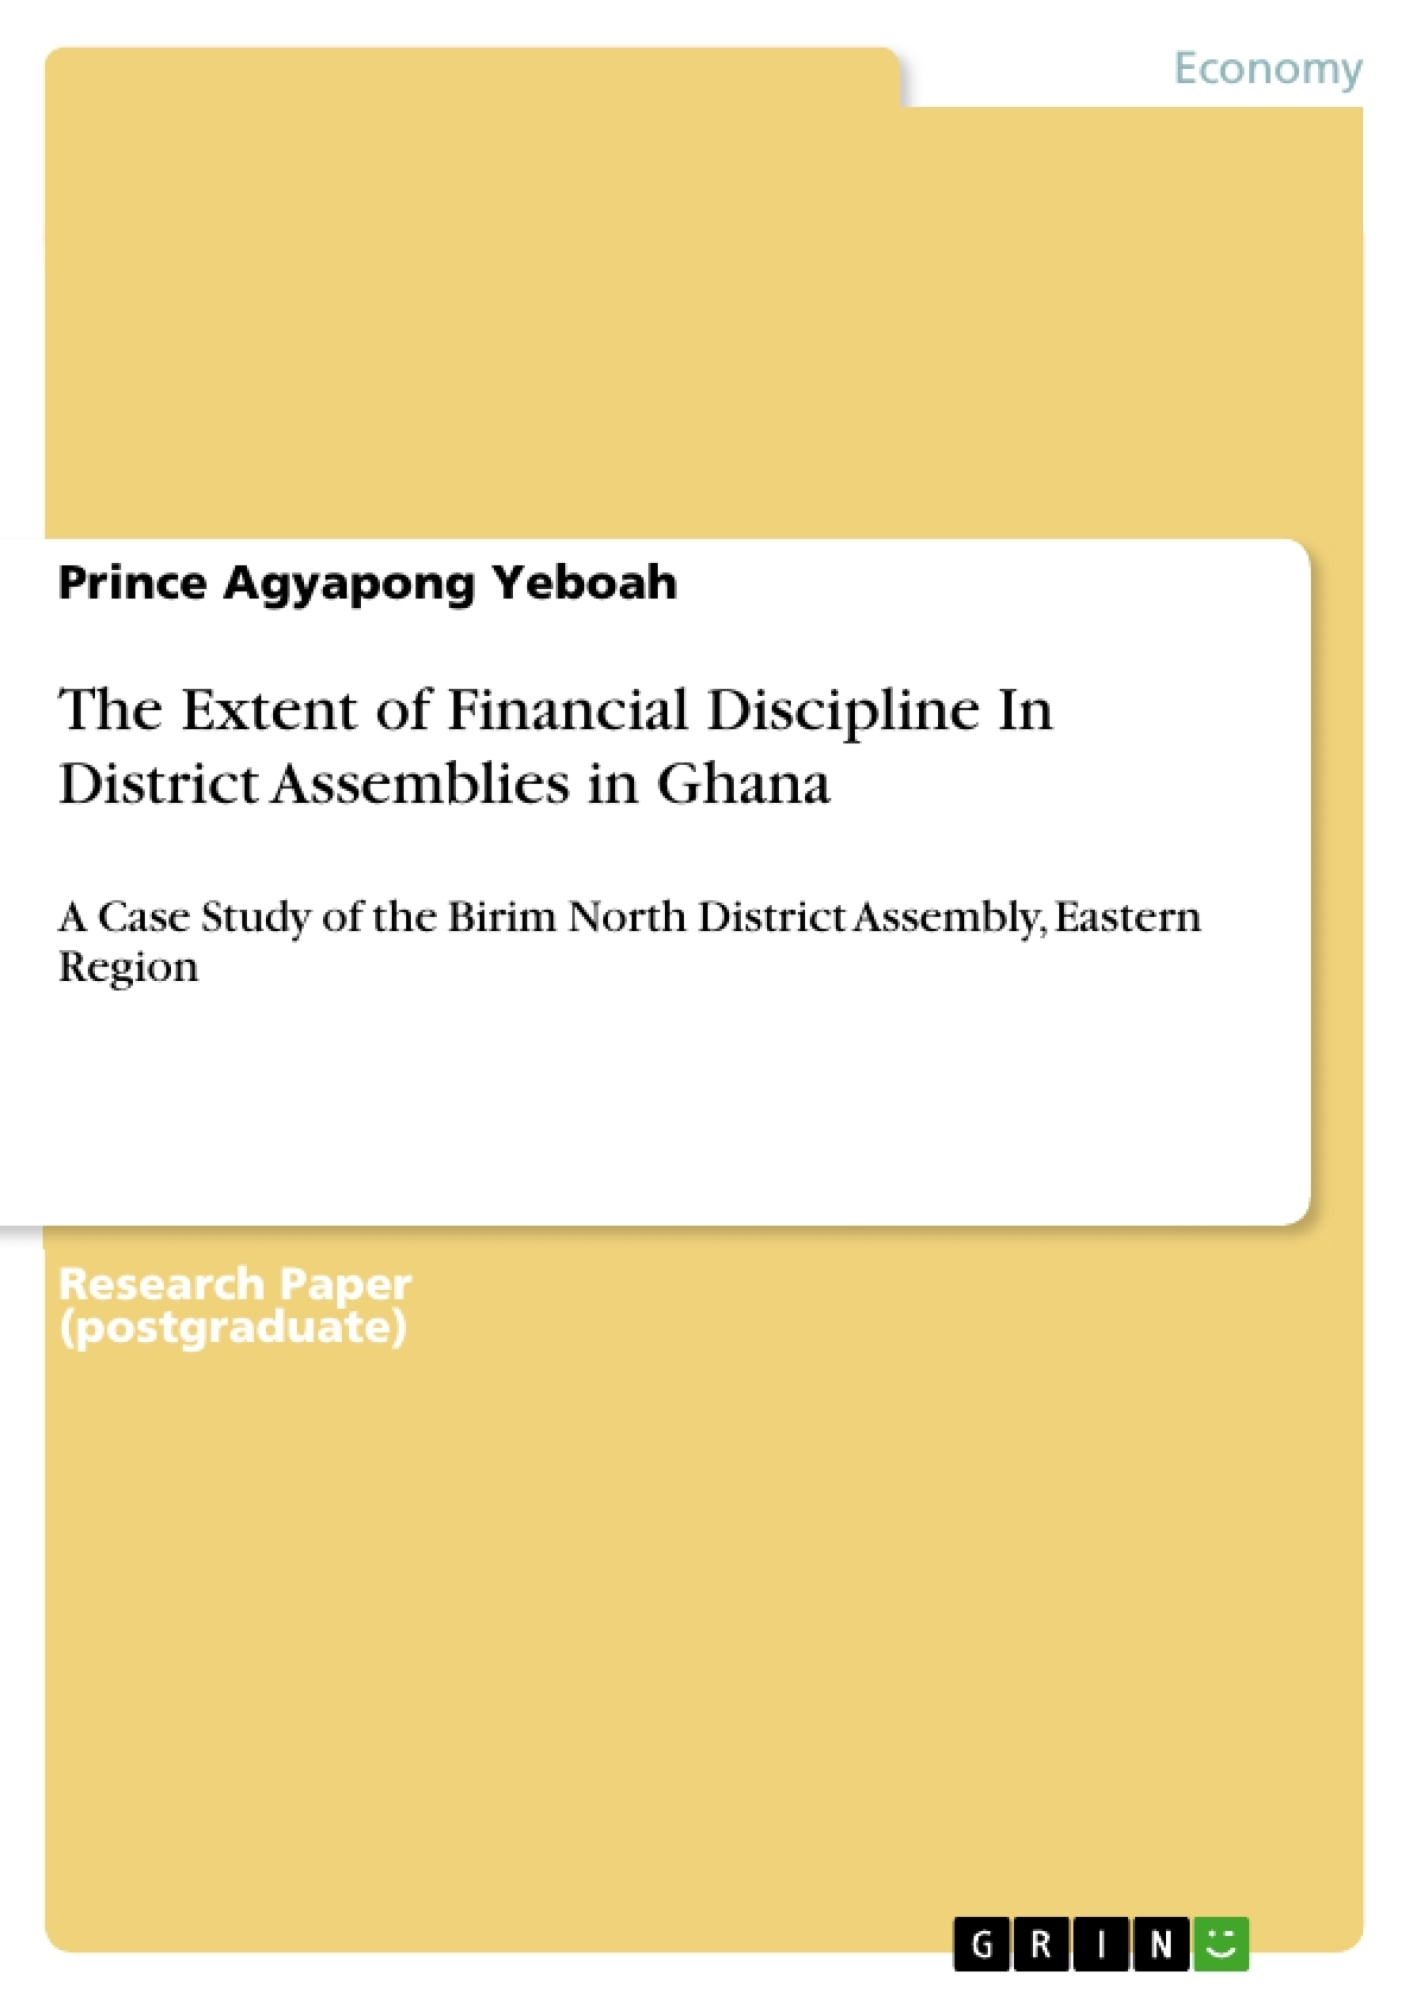 Title: The Extent of Financial Discipline In District Assemblies in Ghana